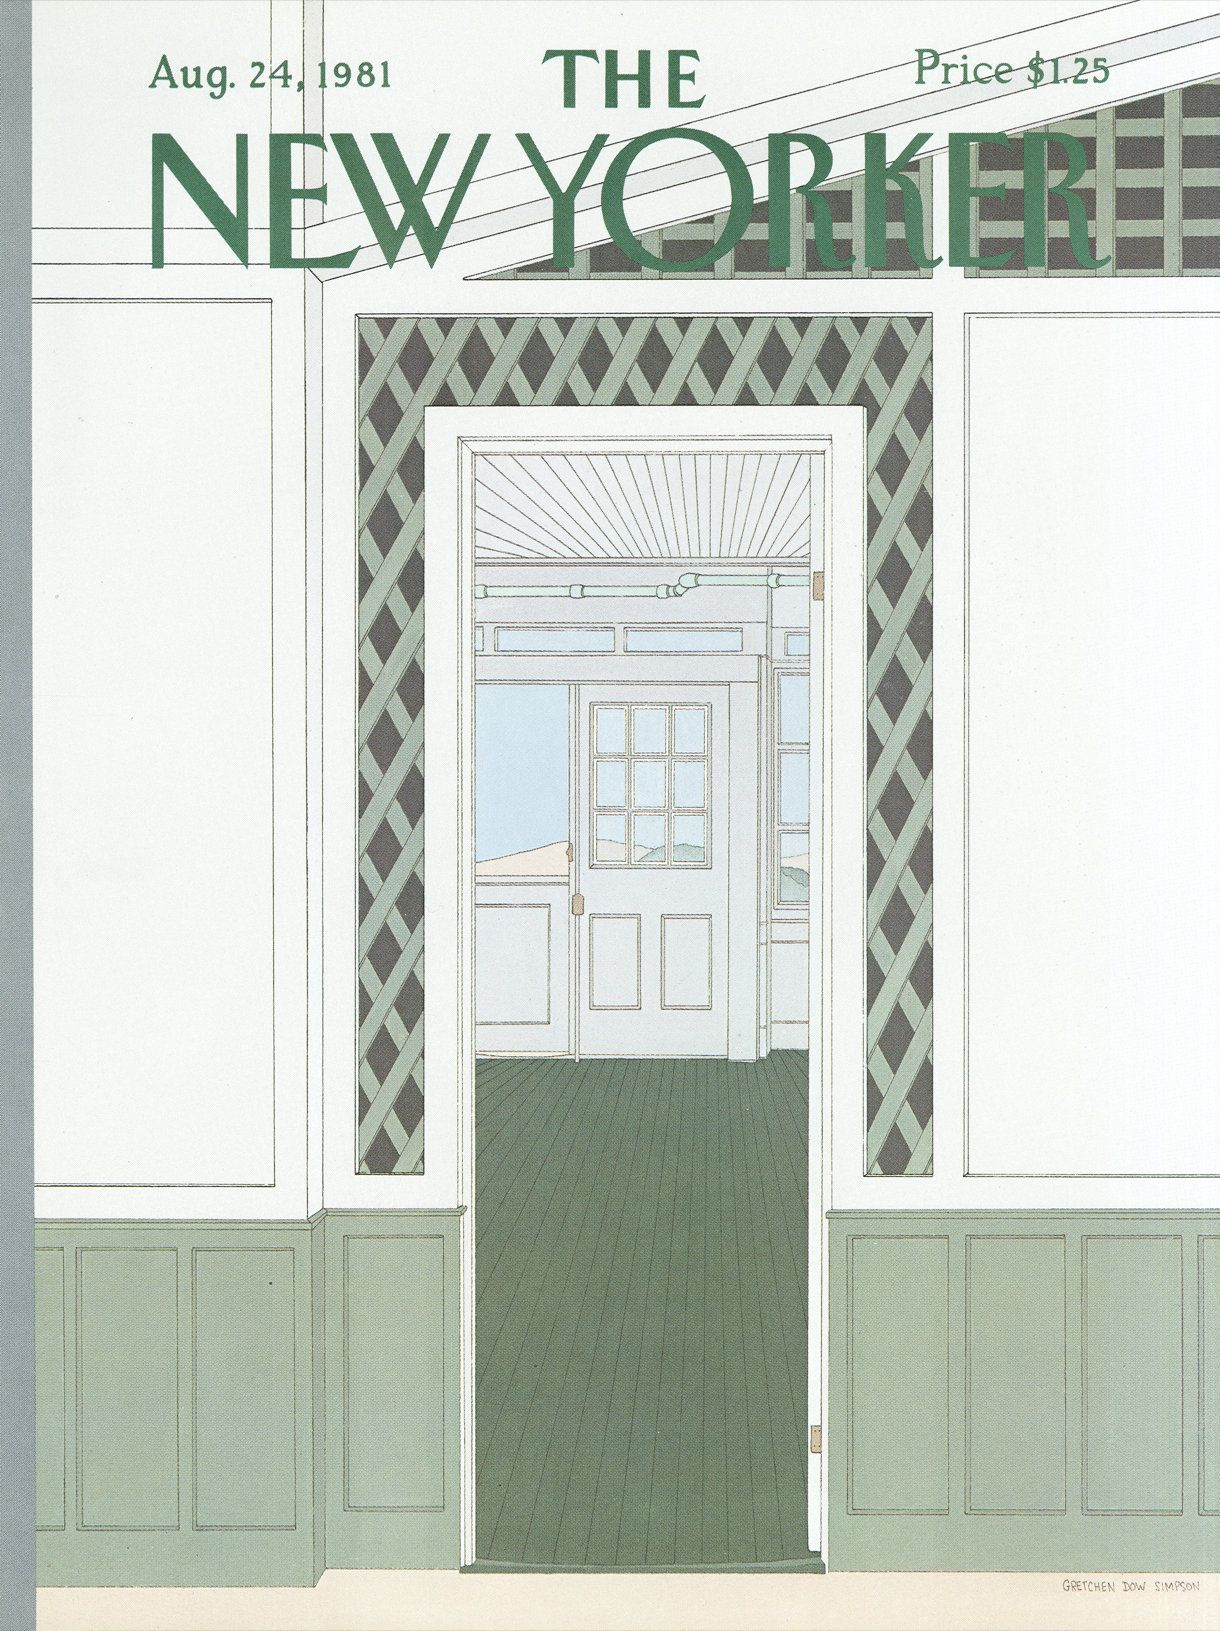 The new yorker monday august issue vol